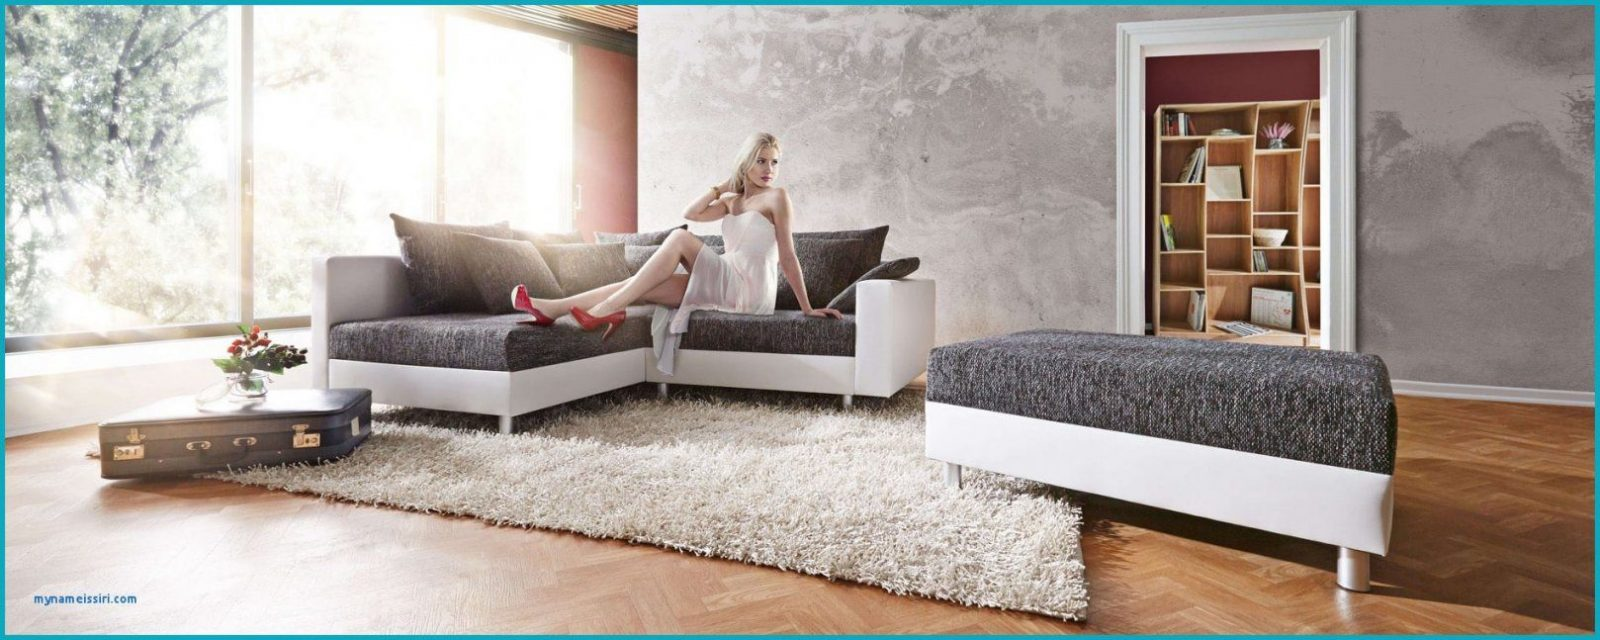 sofa auf raten trotz schufa perfect gnstige schlafsofas auf raten von wohnwand auf raten trotz. Black Bedroom Furniture Sets. Home Design Ideas